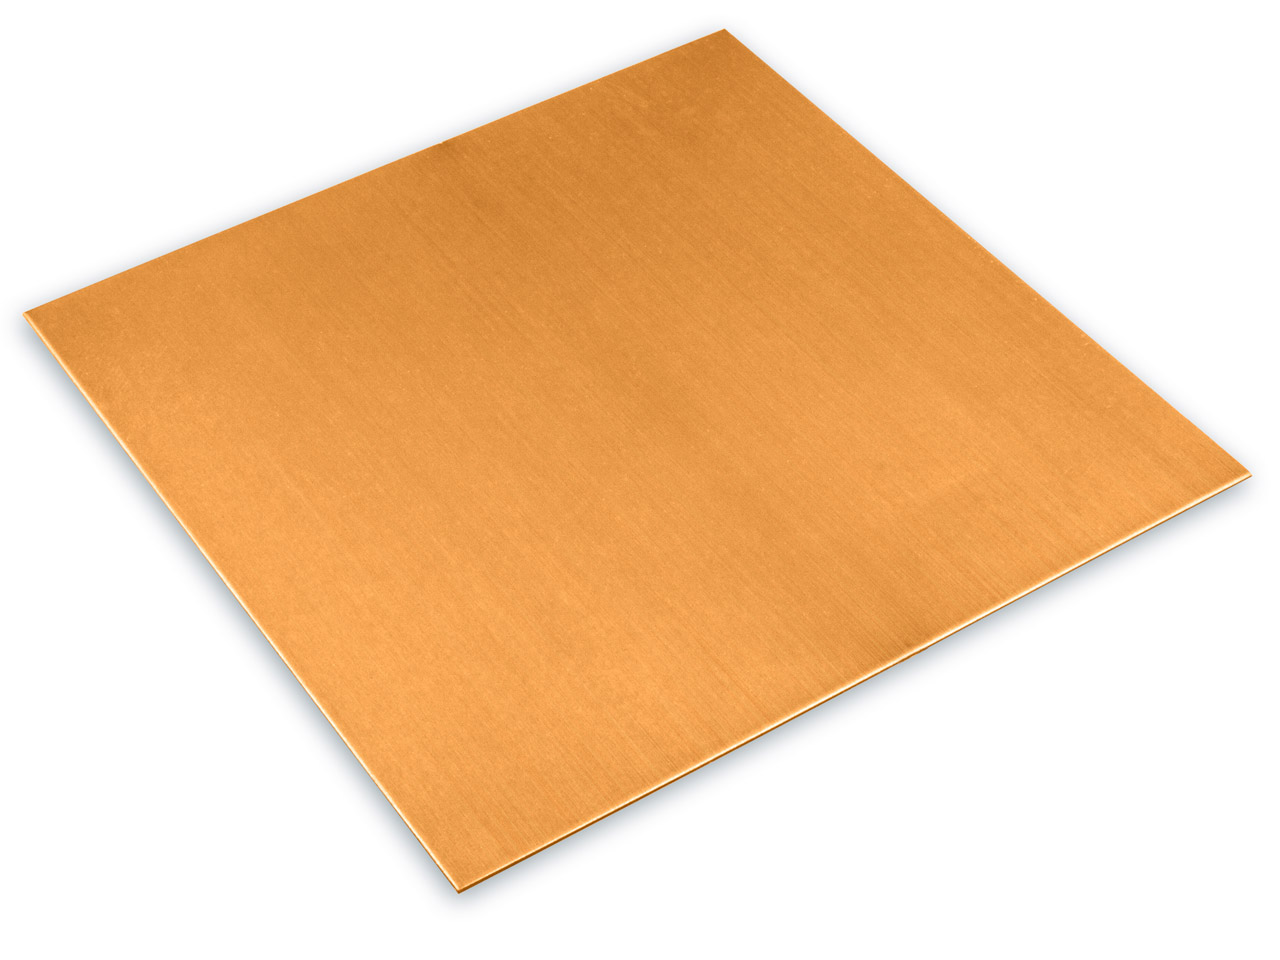 Copper Sheet 100x100x0.9mm